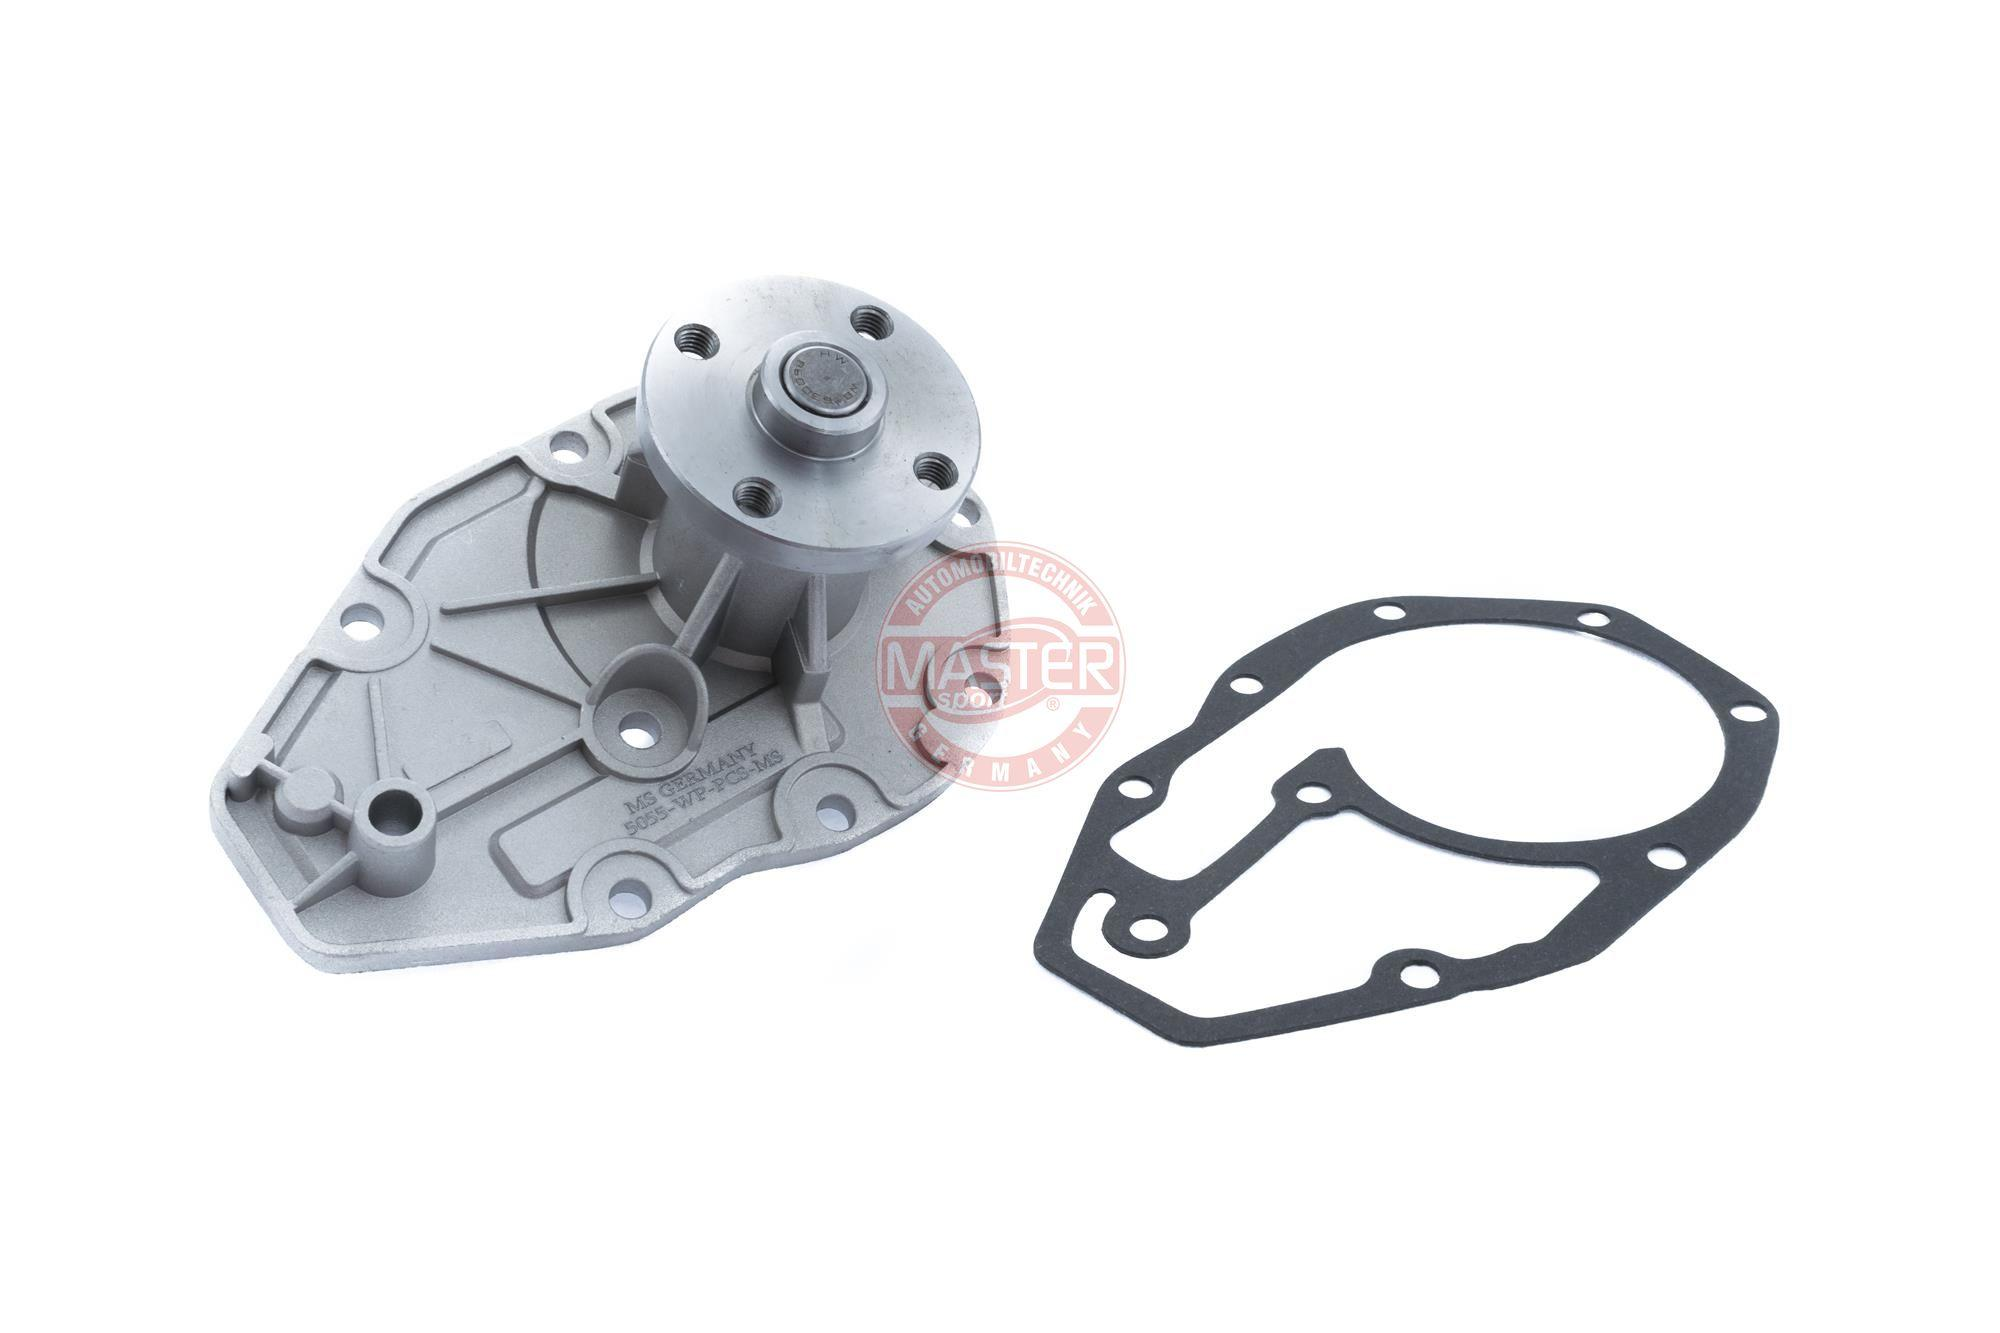 master-sport Waterpomp RENAULT,VOLVO,DACIA 5055-WP-PCS-MS 6000039201